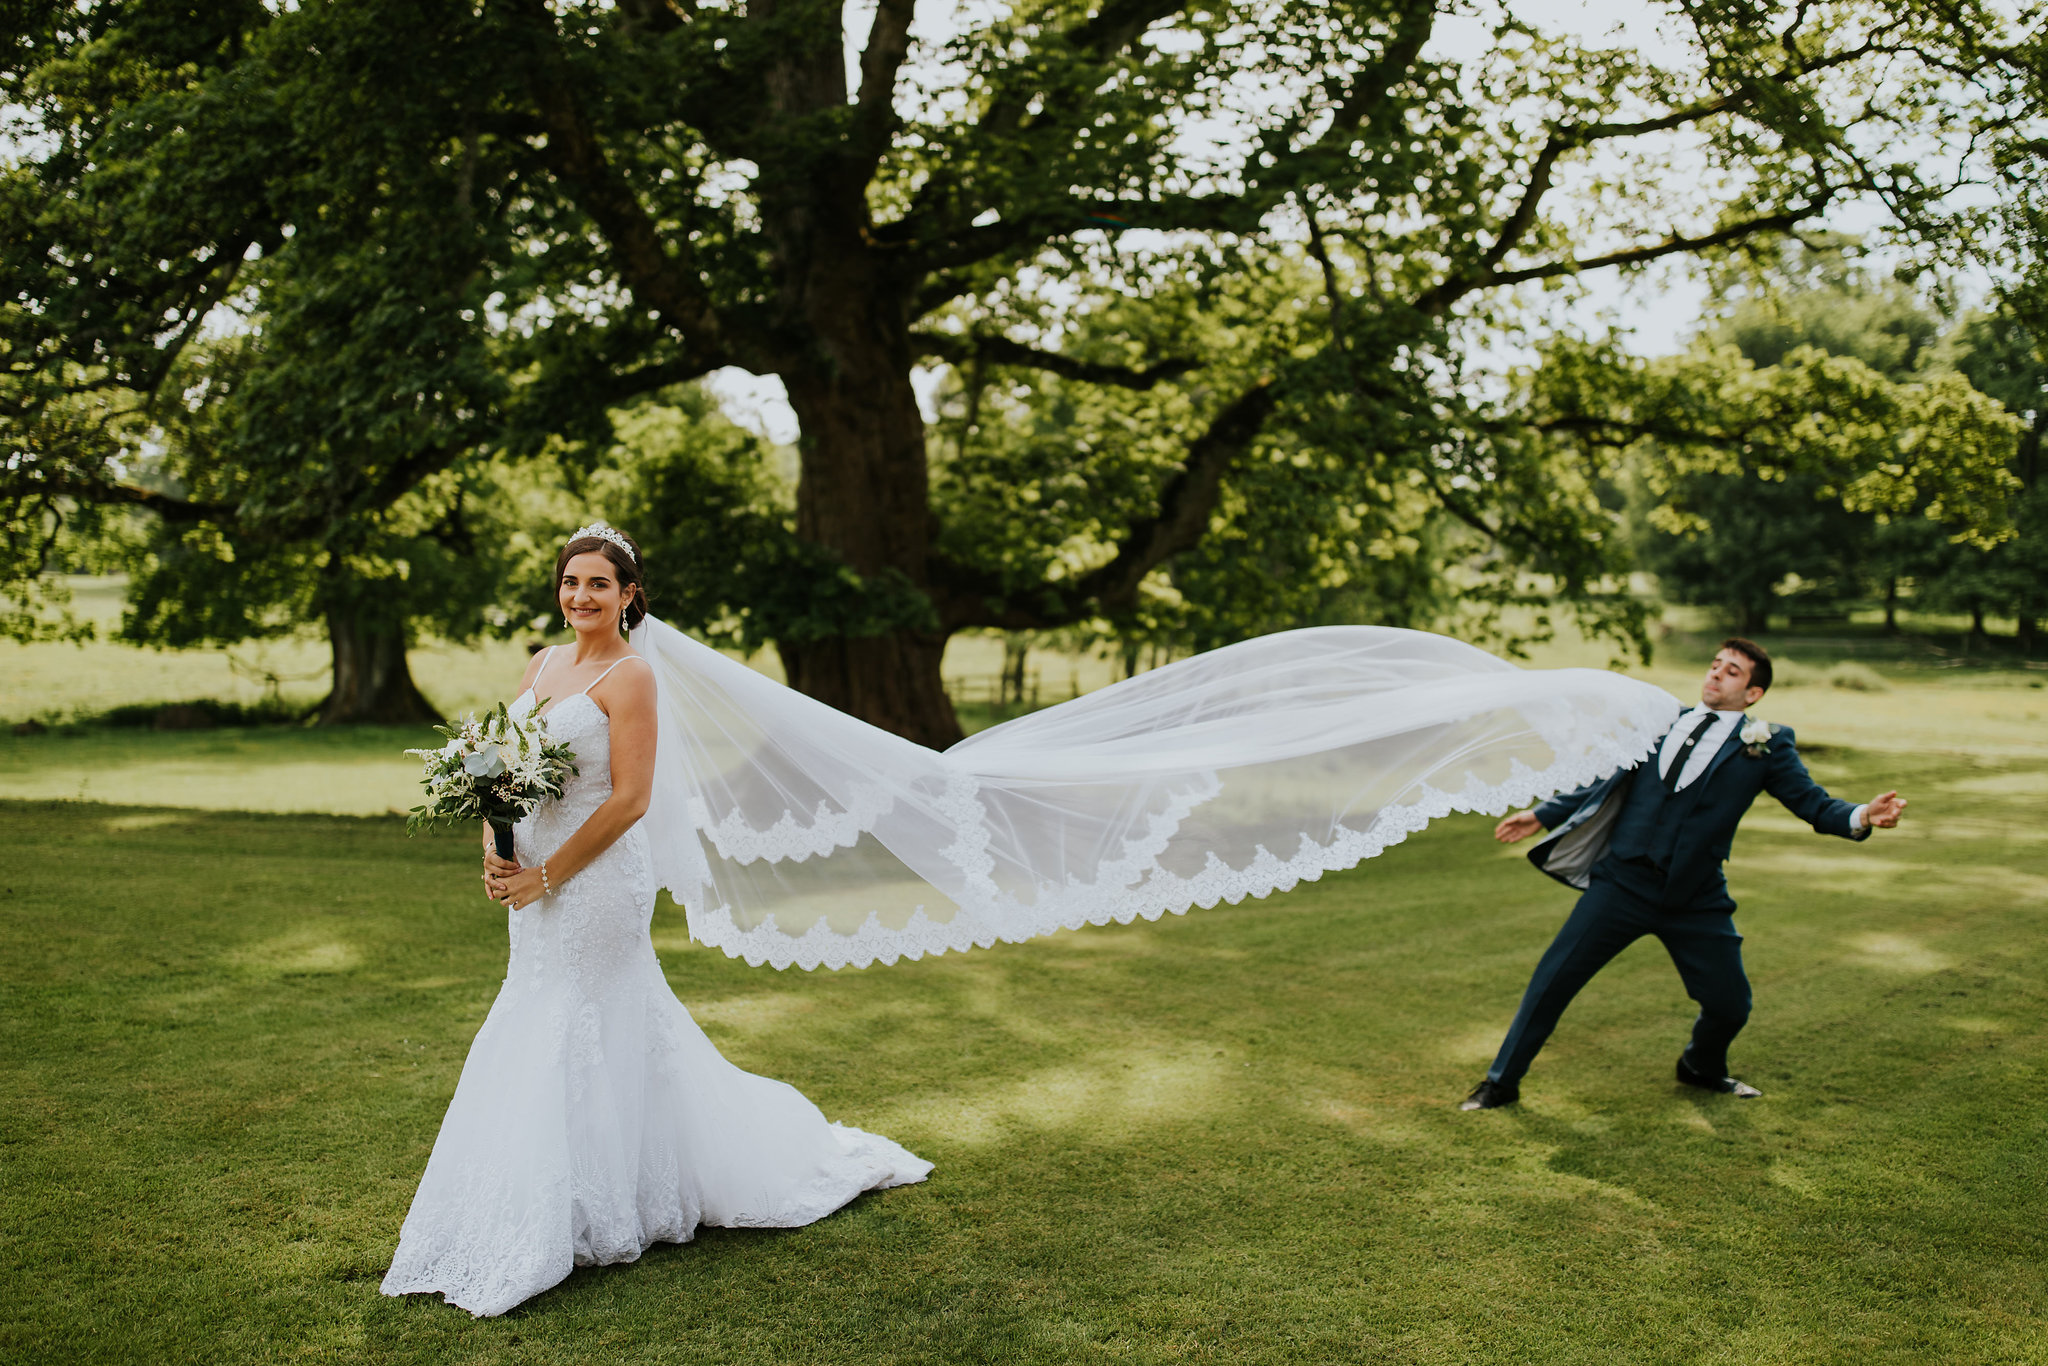 Duns_Castle_wedding_photographer_ross_alexander_photography (69).jpg